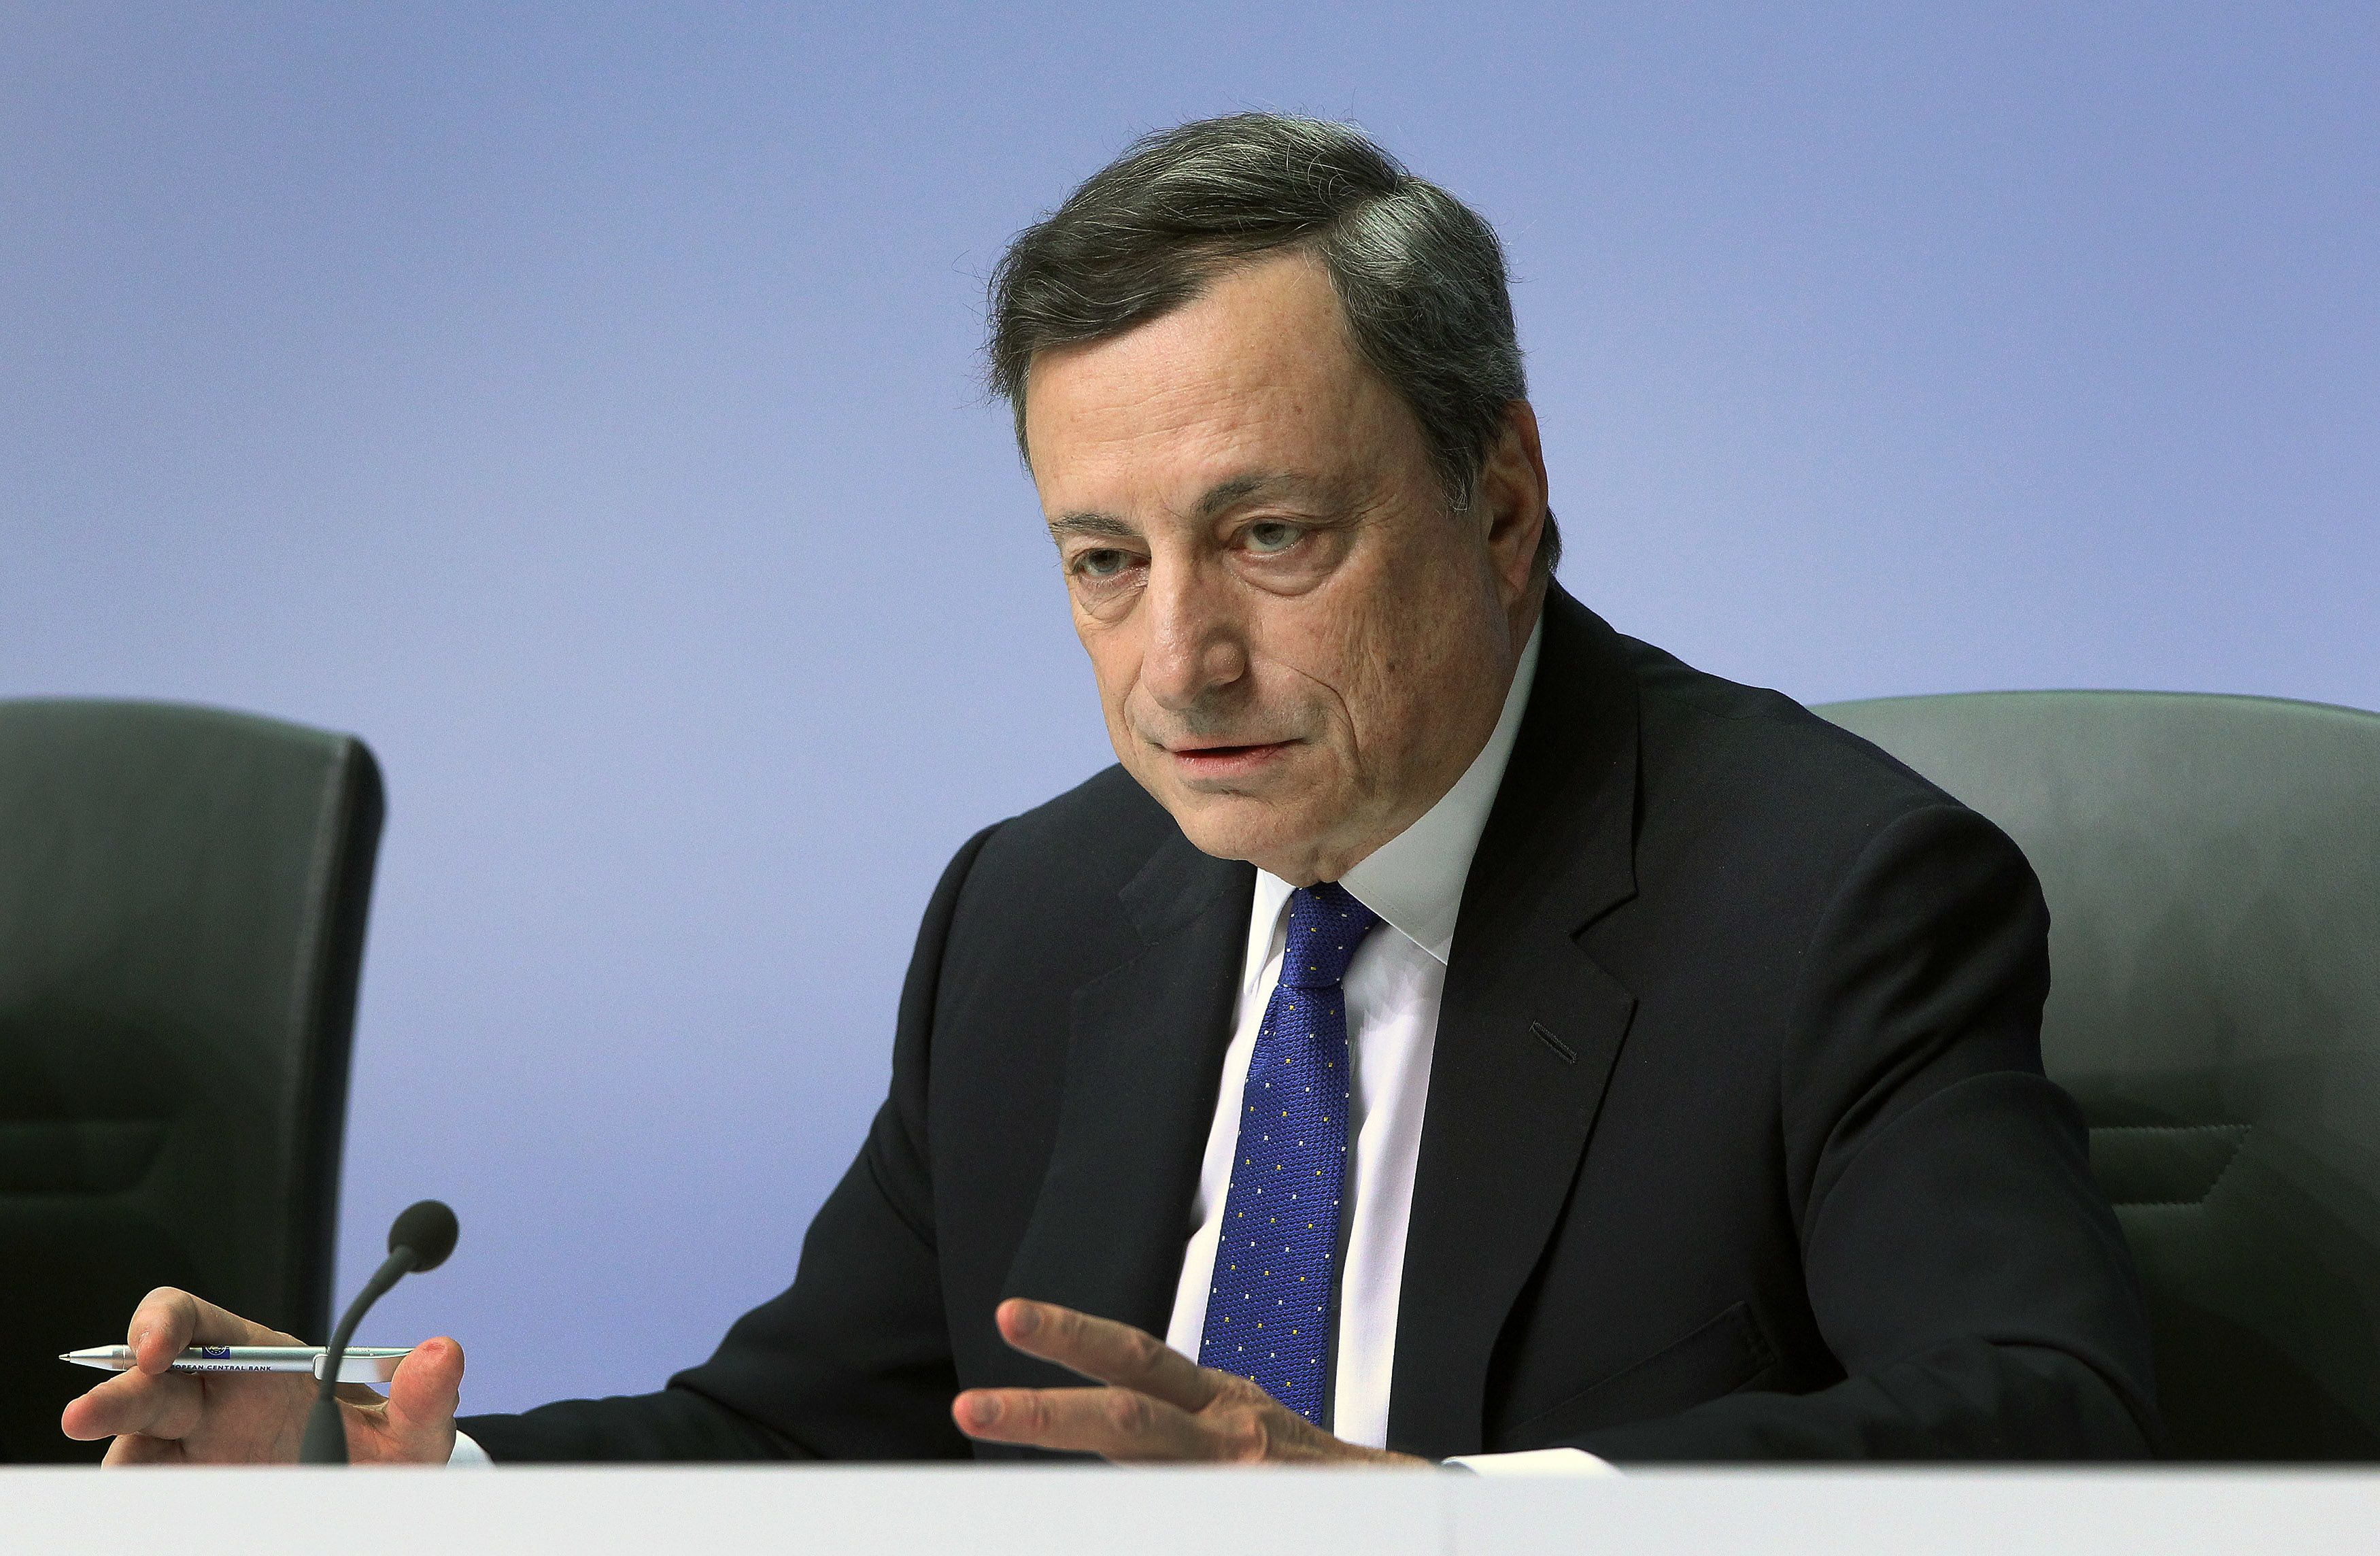 Draghi sparks a wild ride in markets, cements quarter-point Fed cut